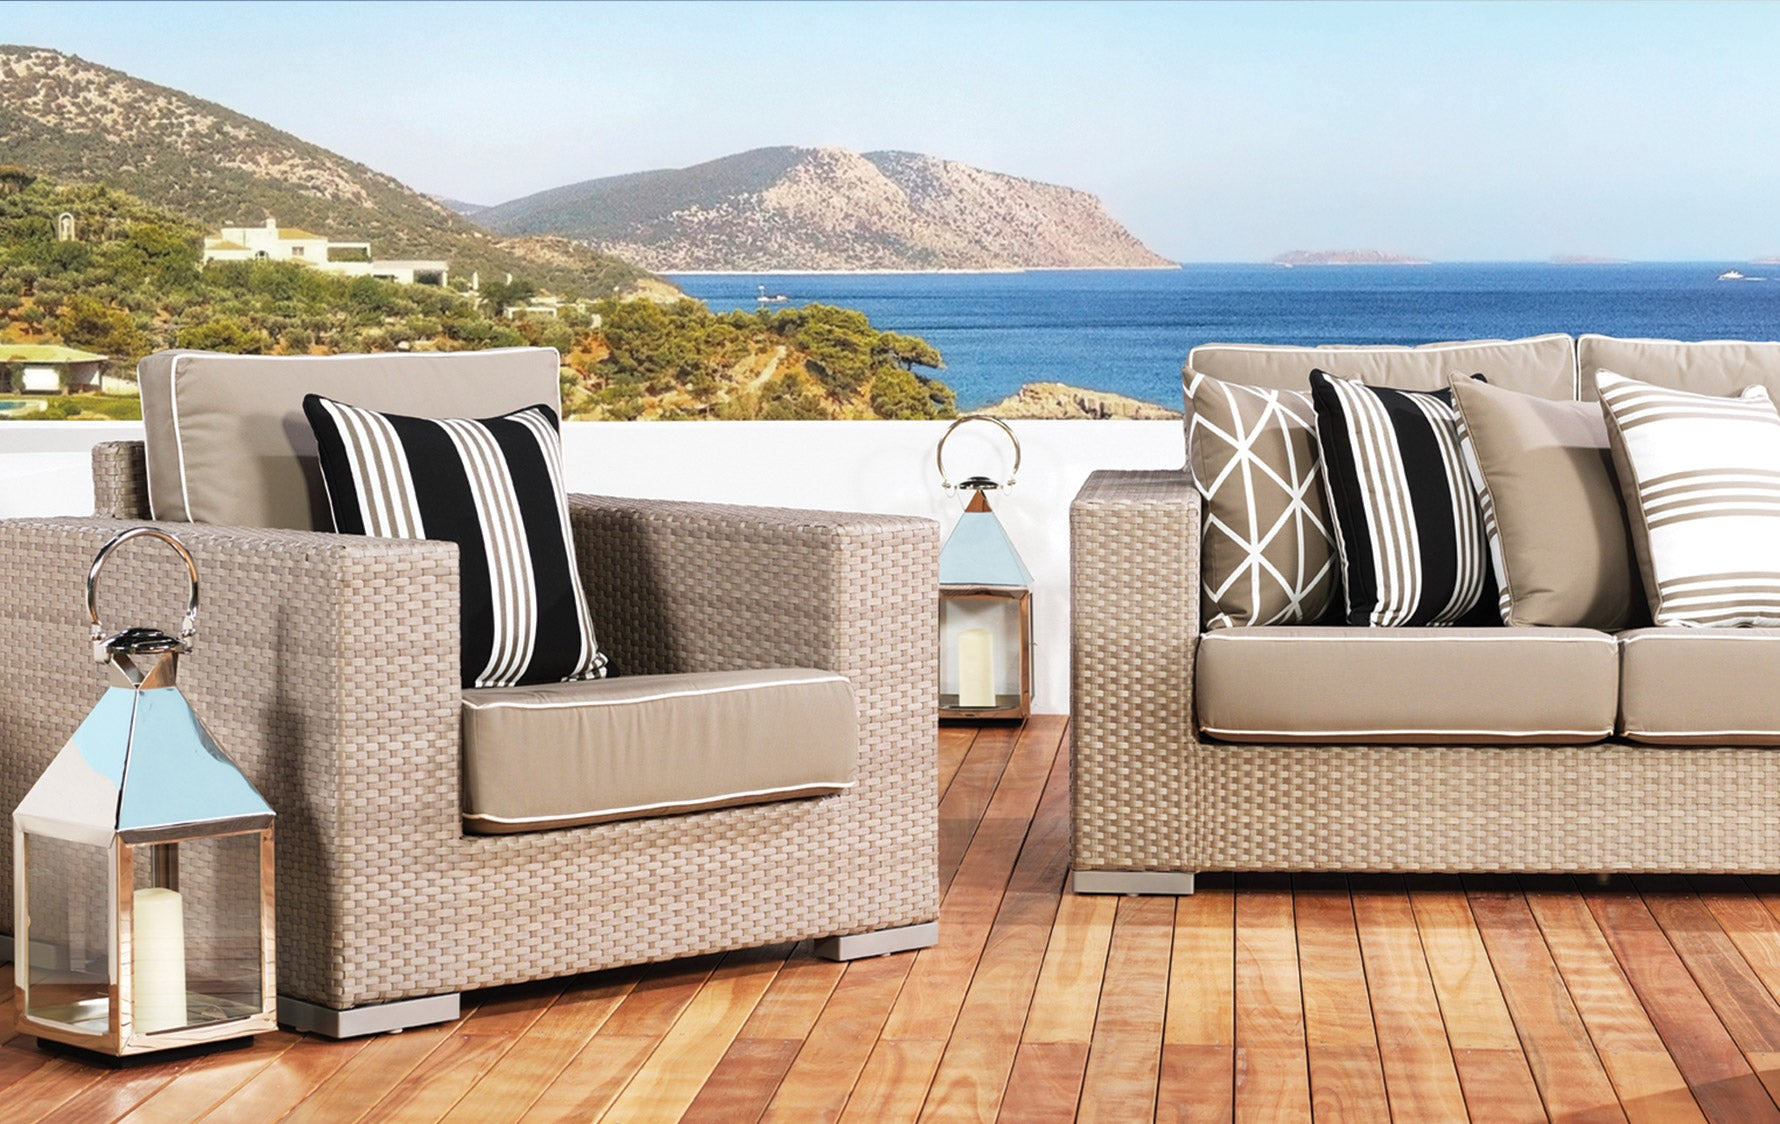 Transform Your Outdoor Space Into A Staycation Resort | Get the French Riviera look at LuxDeco.com